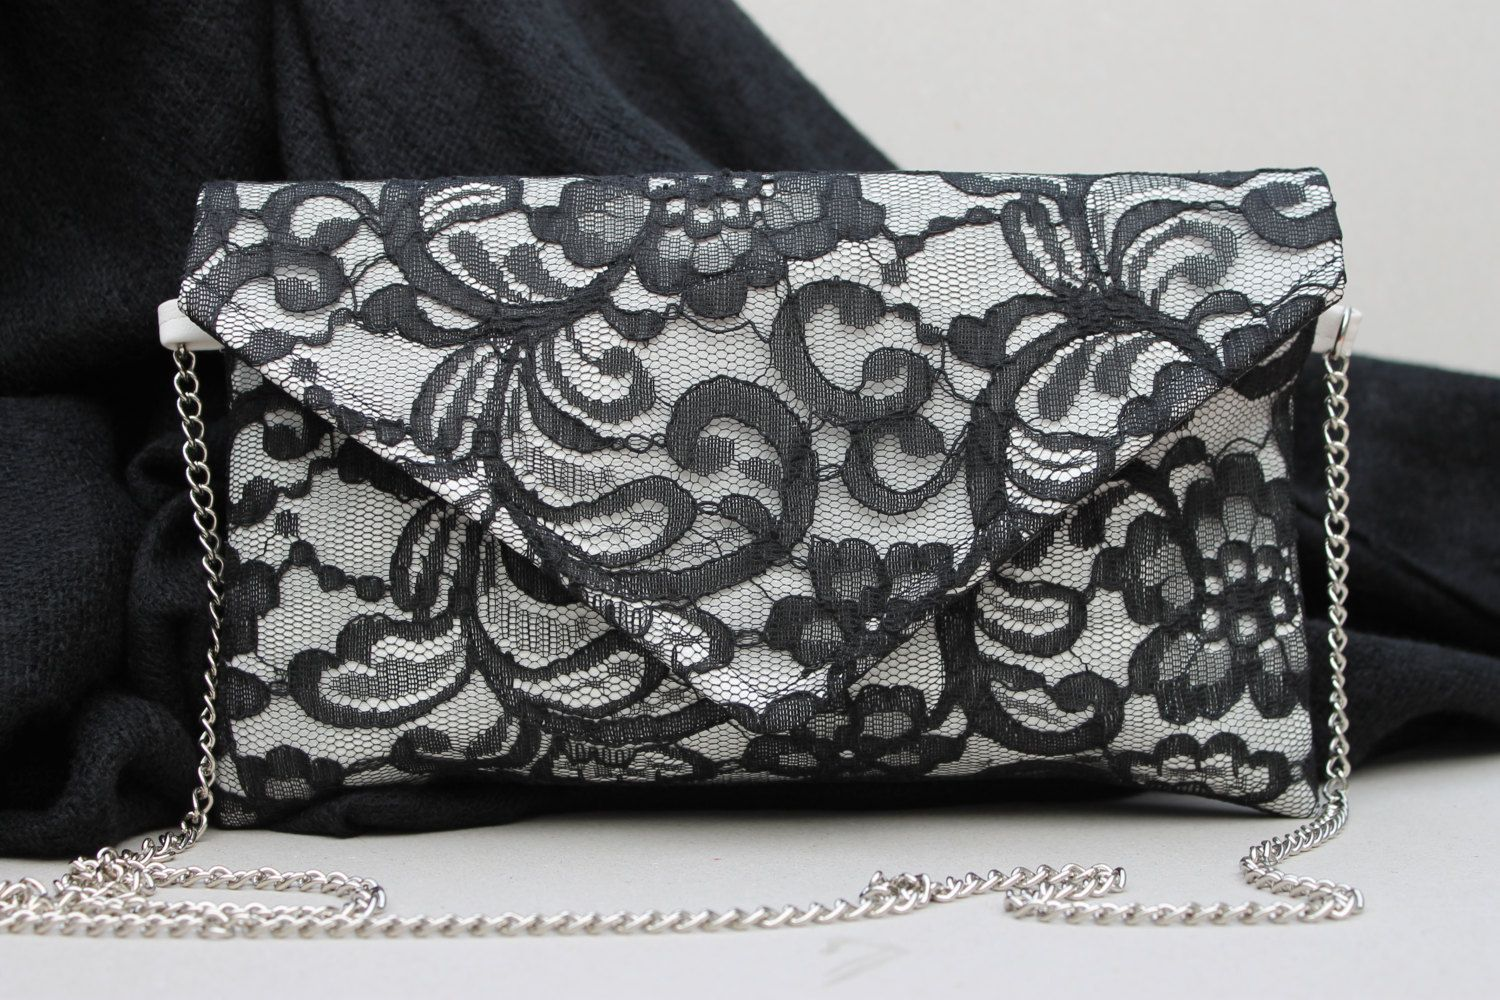 2f461071f89 Tas, clutch, handtas lederlook met kant, avondtas, gala tas,kleine tas,dames  tas met zwart kant, crossbodytas, bag with lace, eveningbag. door ...